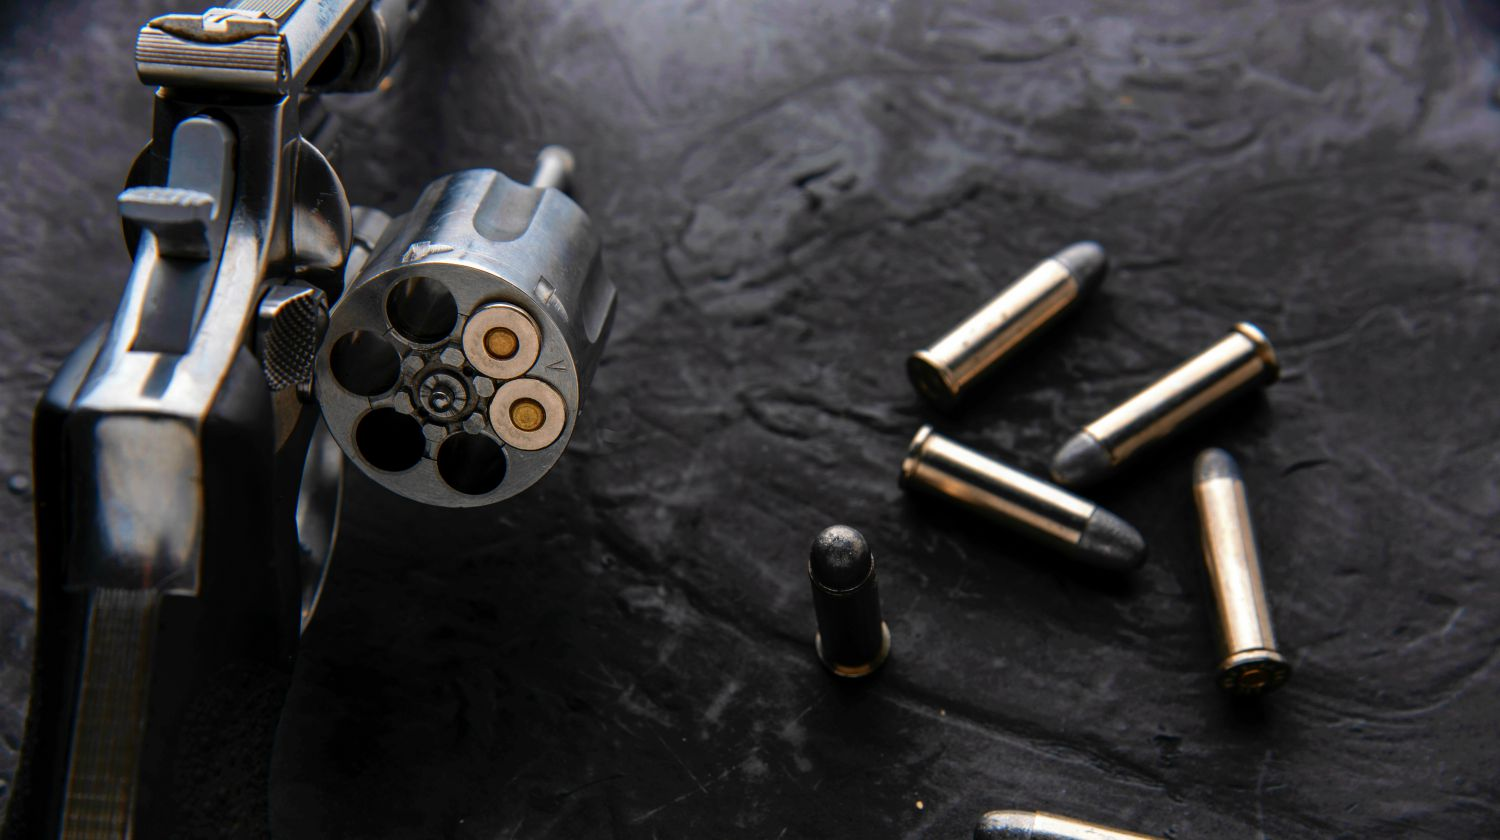 Gun with ammunition on dark background | Bringing Gun To The Gym: Why And How To Concealed Carry At The Gym | Featured